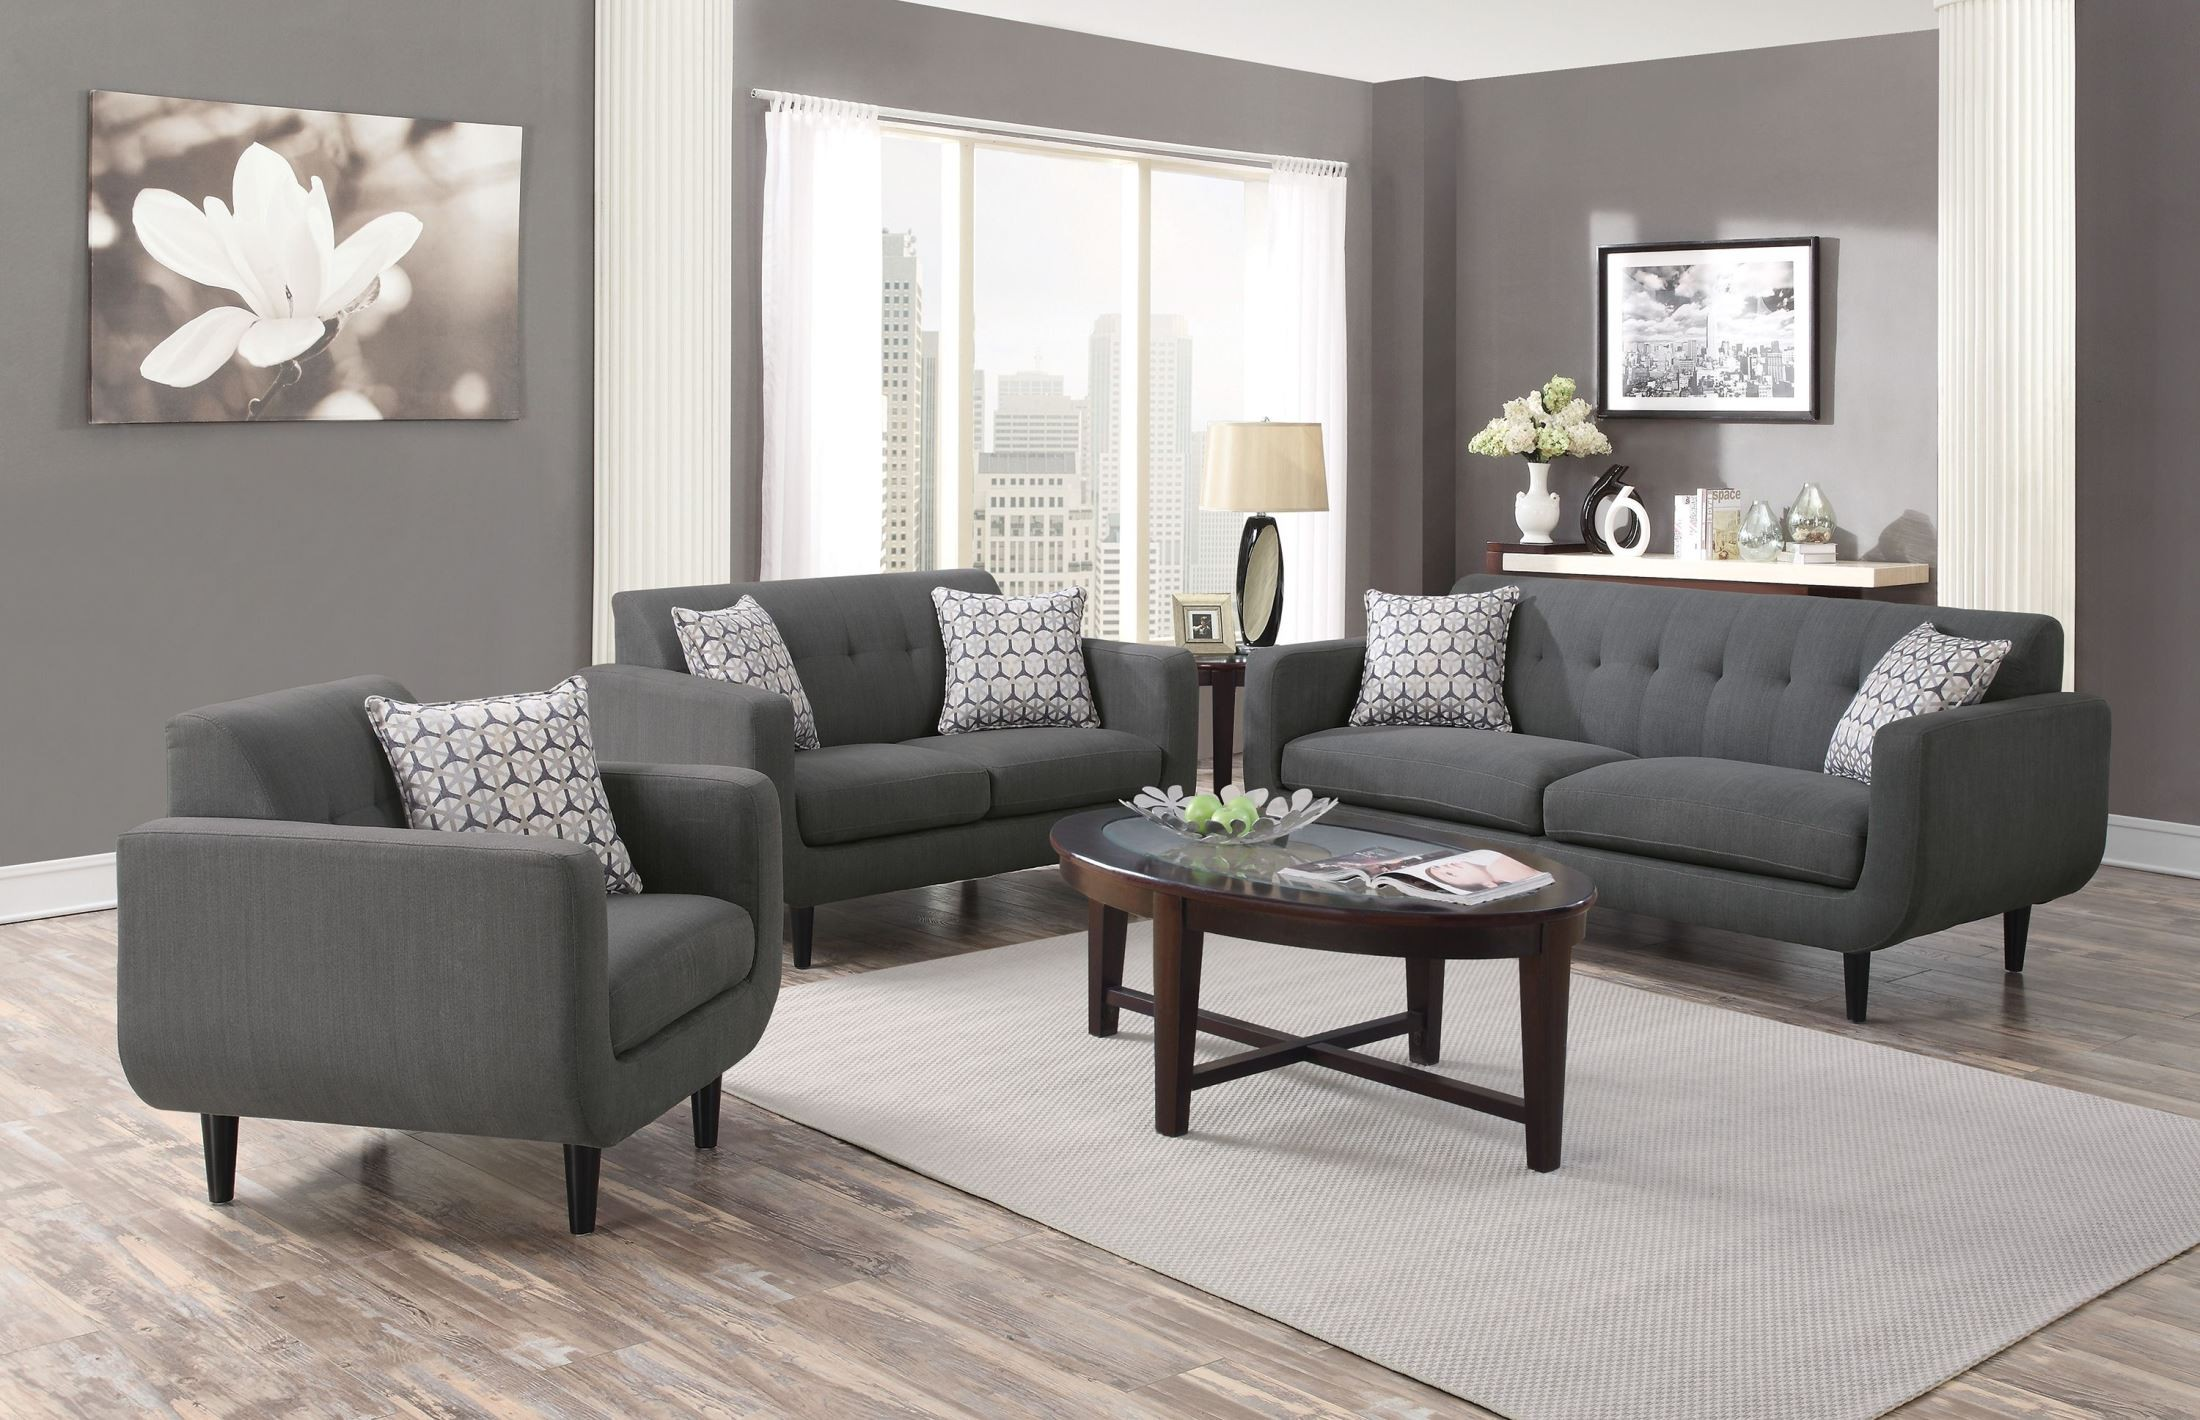 Stansall grey living room set 505201 coaster - Living room furnature ...